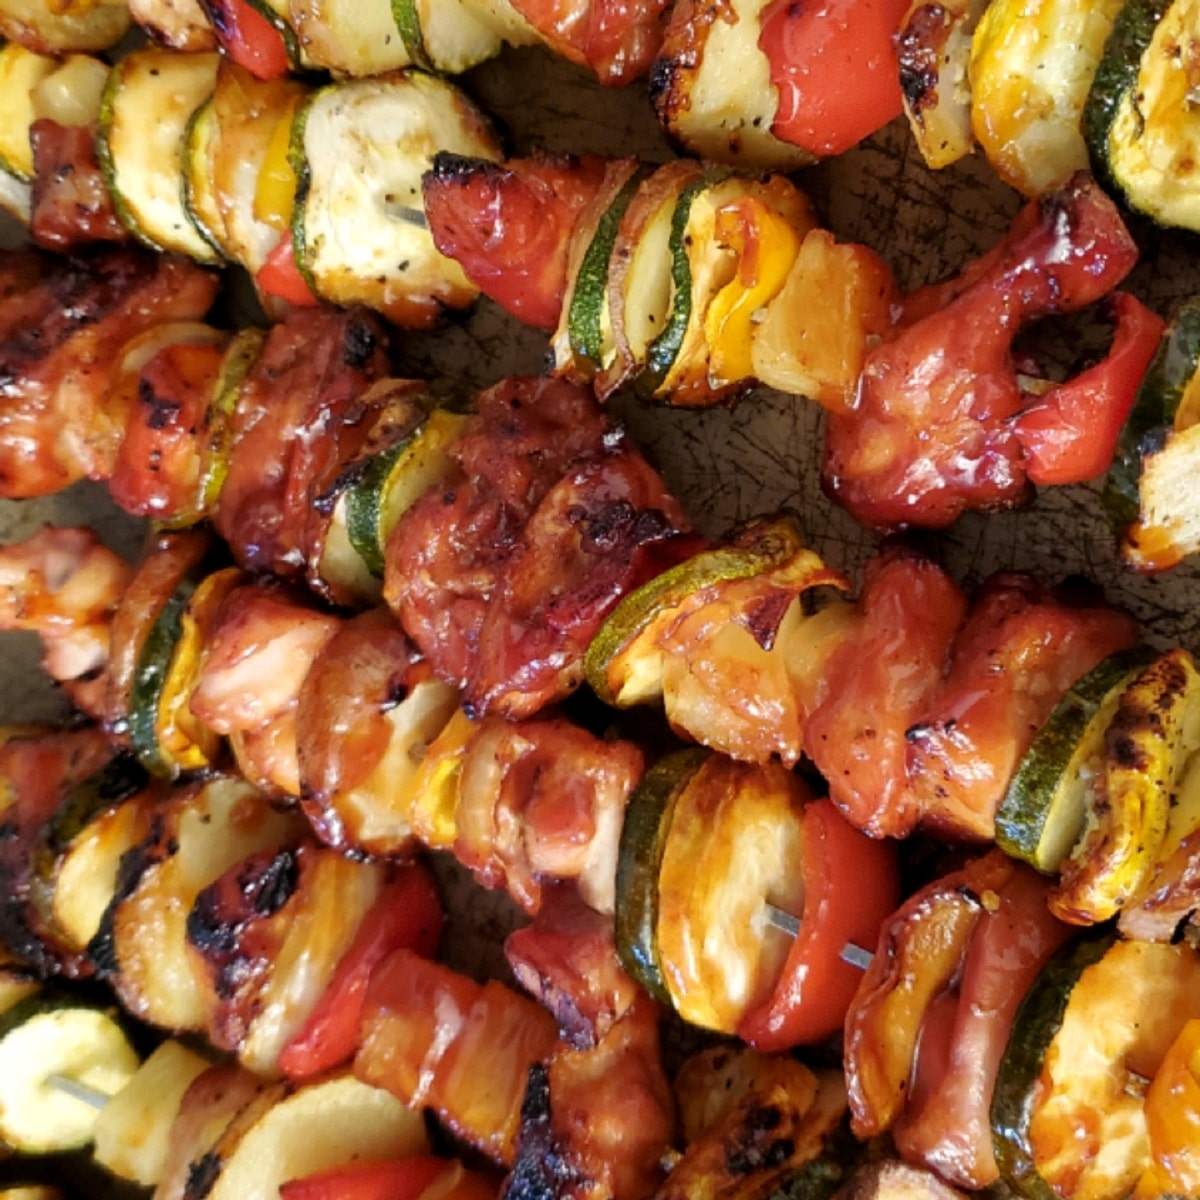 Kabobs on tray with chicken tomato and zucchini